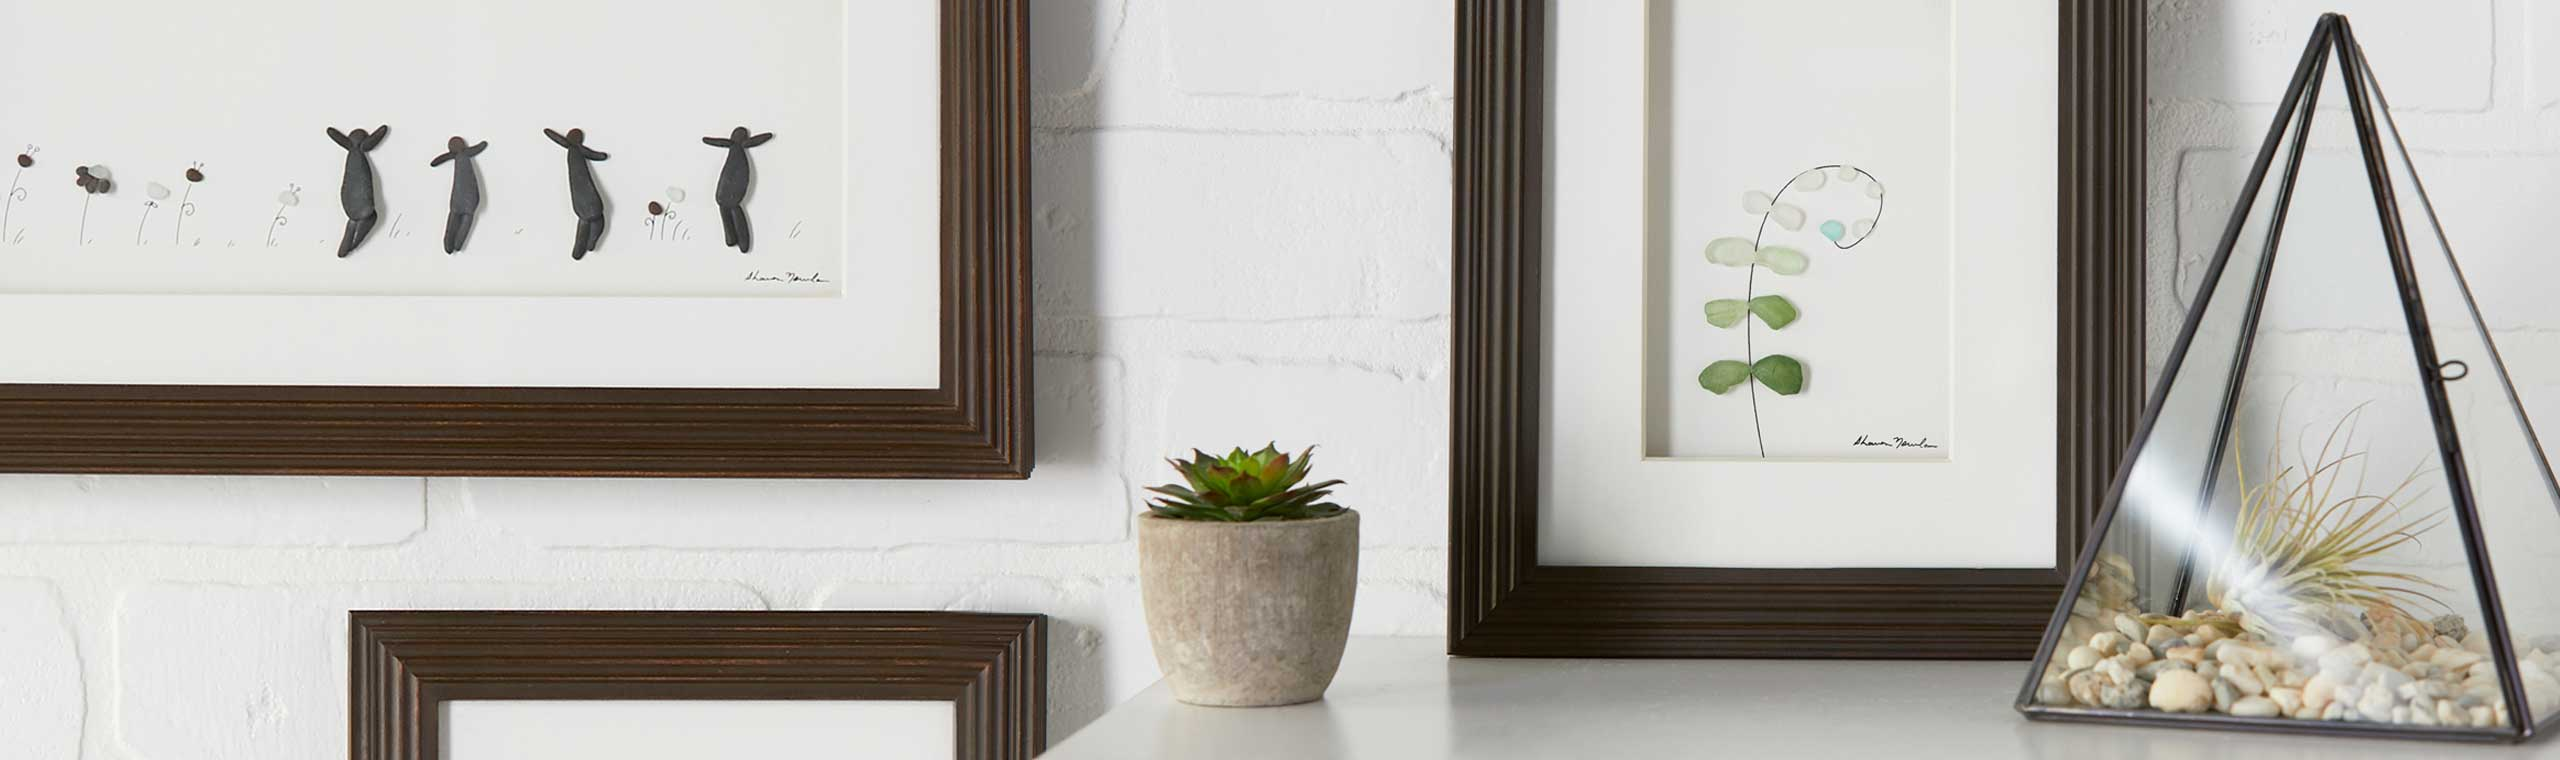 small plants on a table and hanging picture frames with stone illustrated pictures